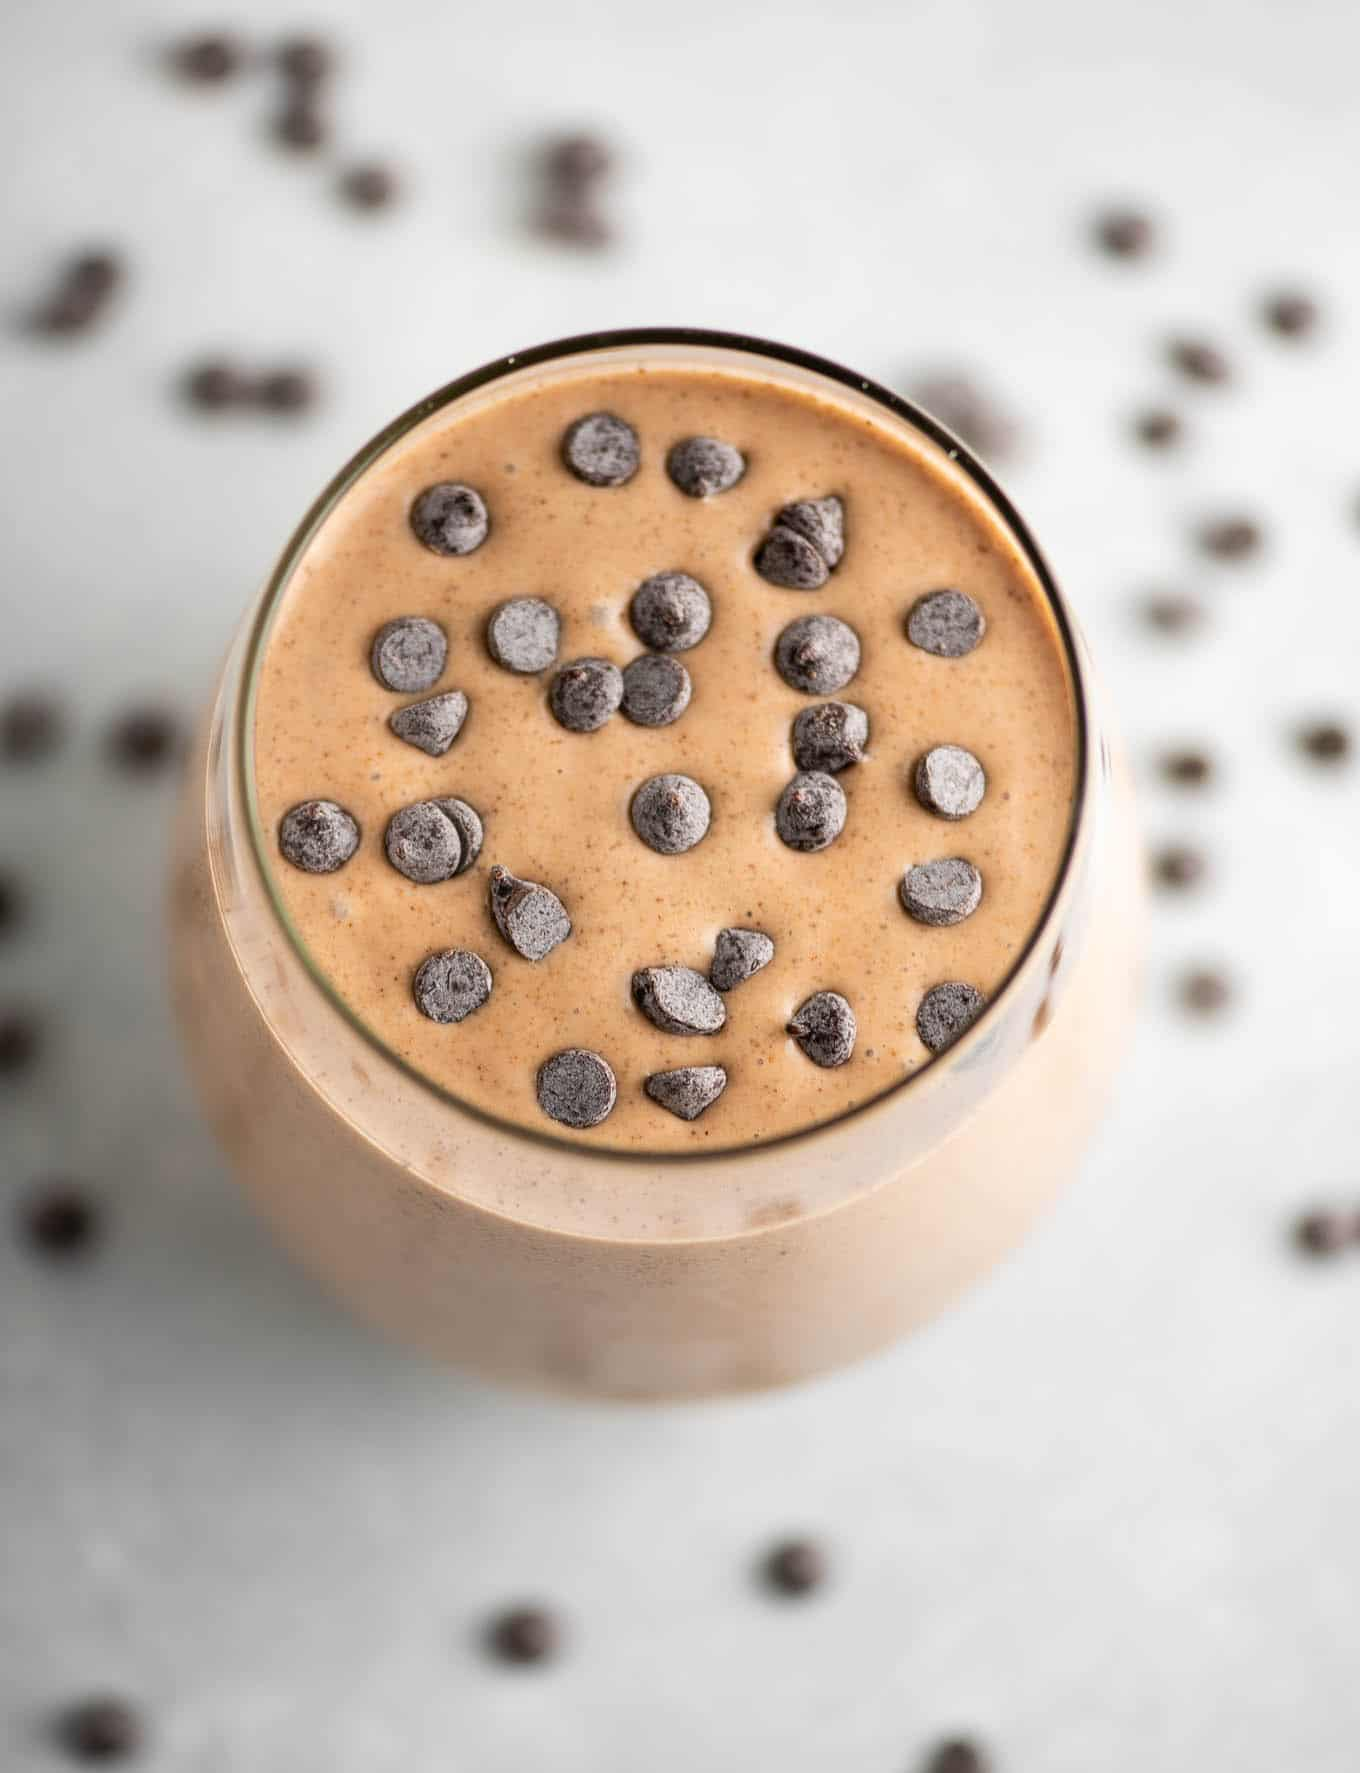 chocolate smoothie with chocolate chips on top from an overhead view